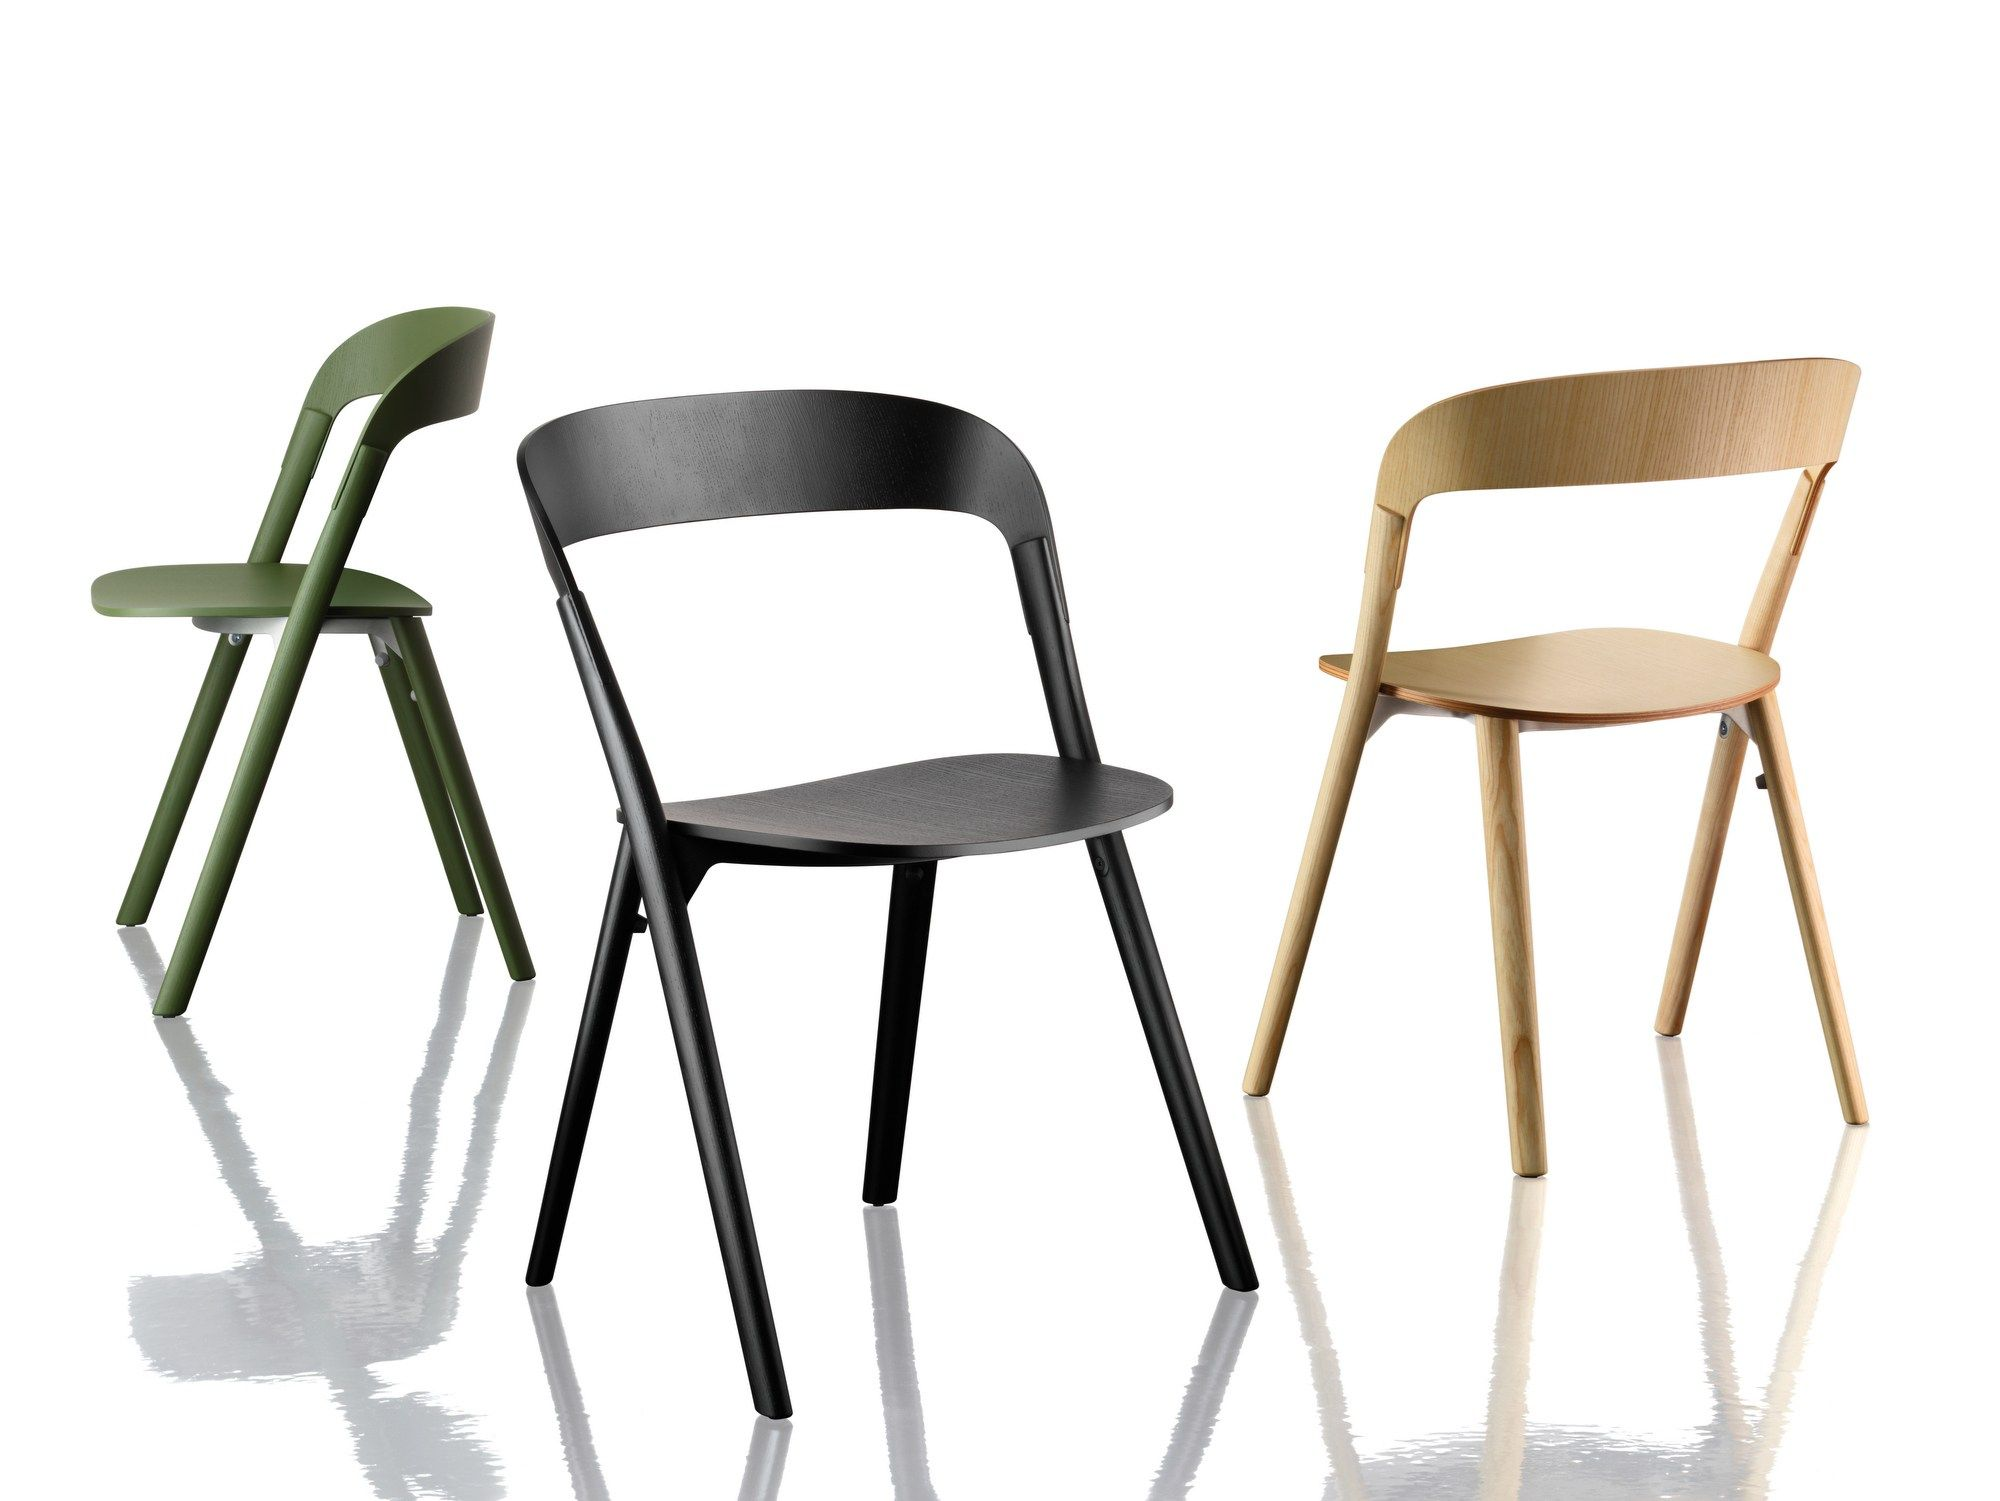 Topstar Sedie ~ 60 best s e d i e images on pinterest chairs chair design and